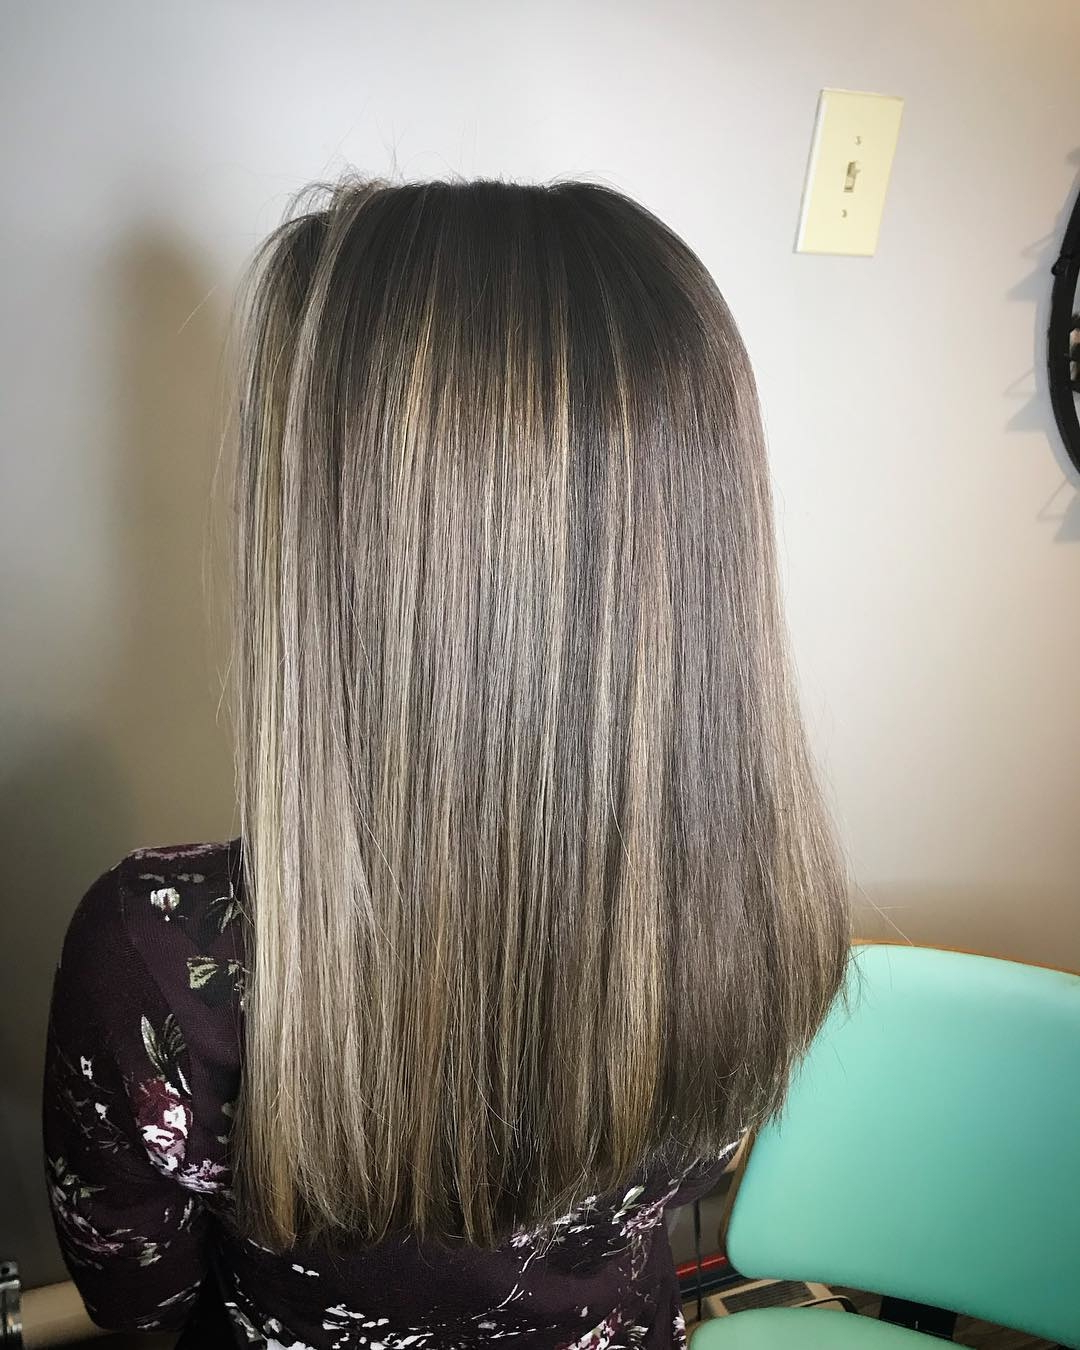 20 Caramel Highlights For Dark Brown Hair 2021 – Short Inside Short Brown Hairstyles With Subtle Highlights (View 9 of 20)